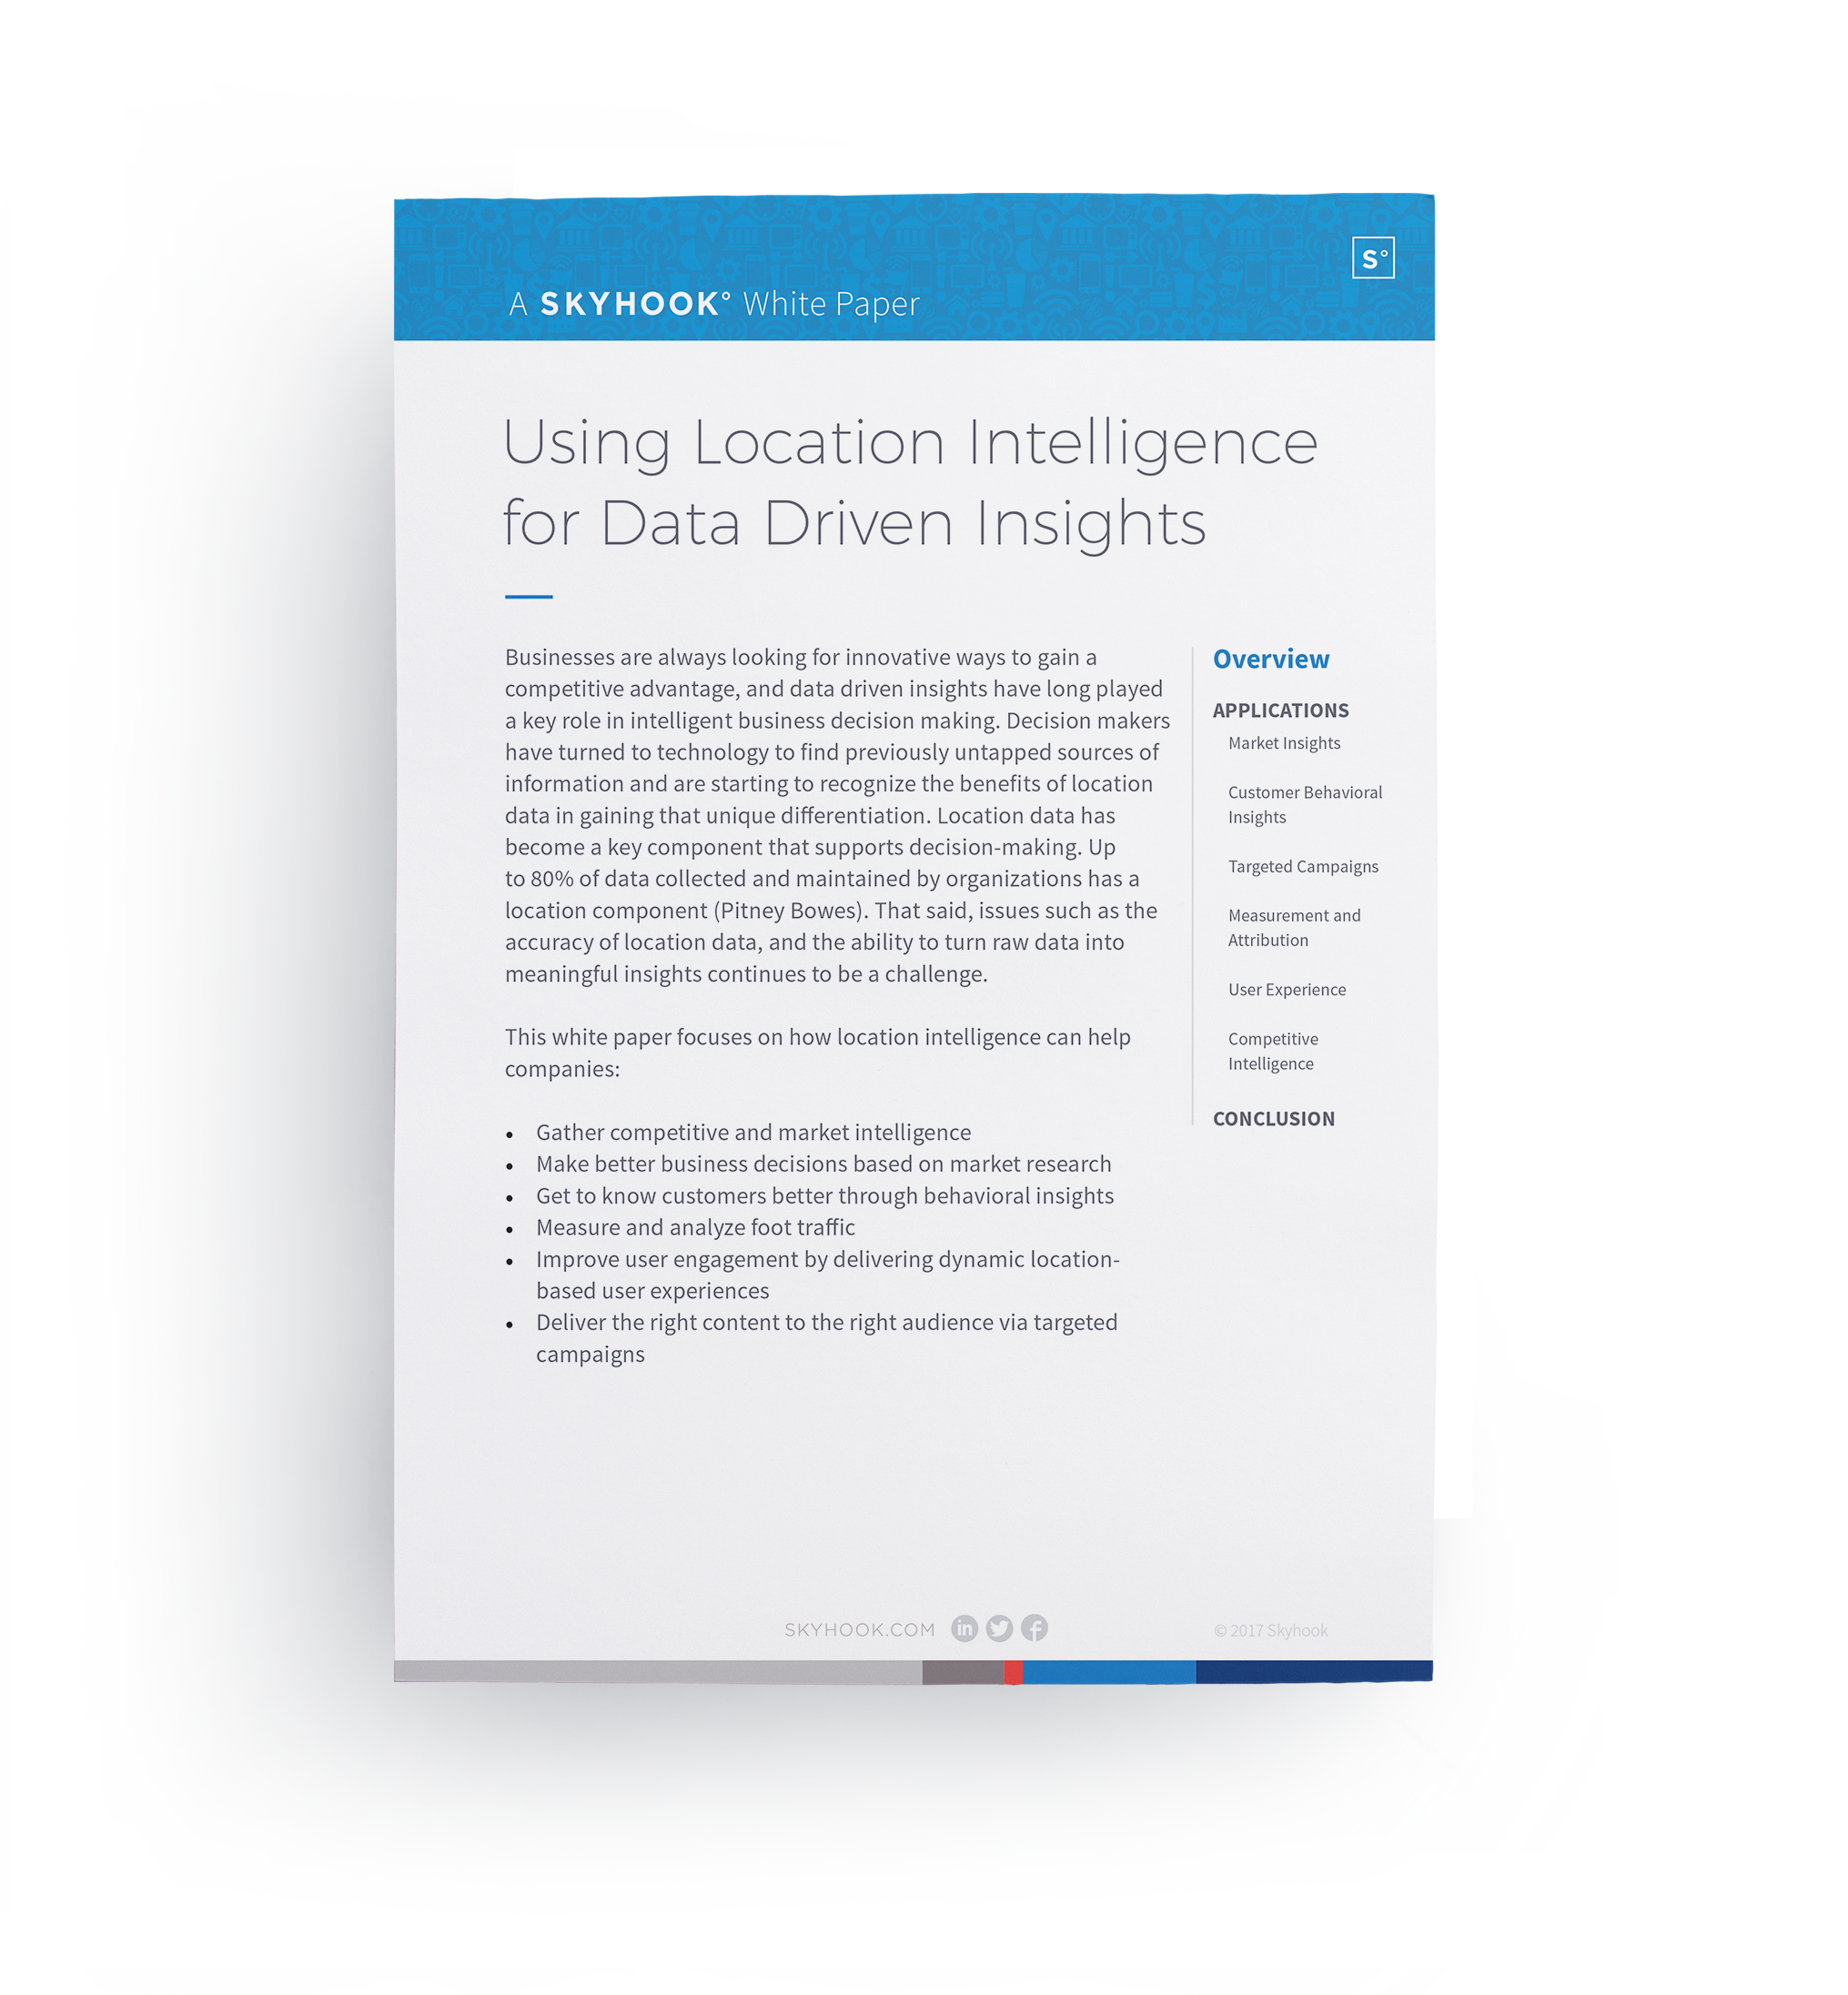 geospatial-insights-white-paper-mockup.png